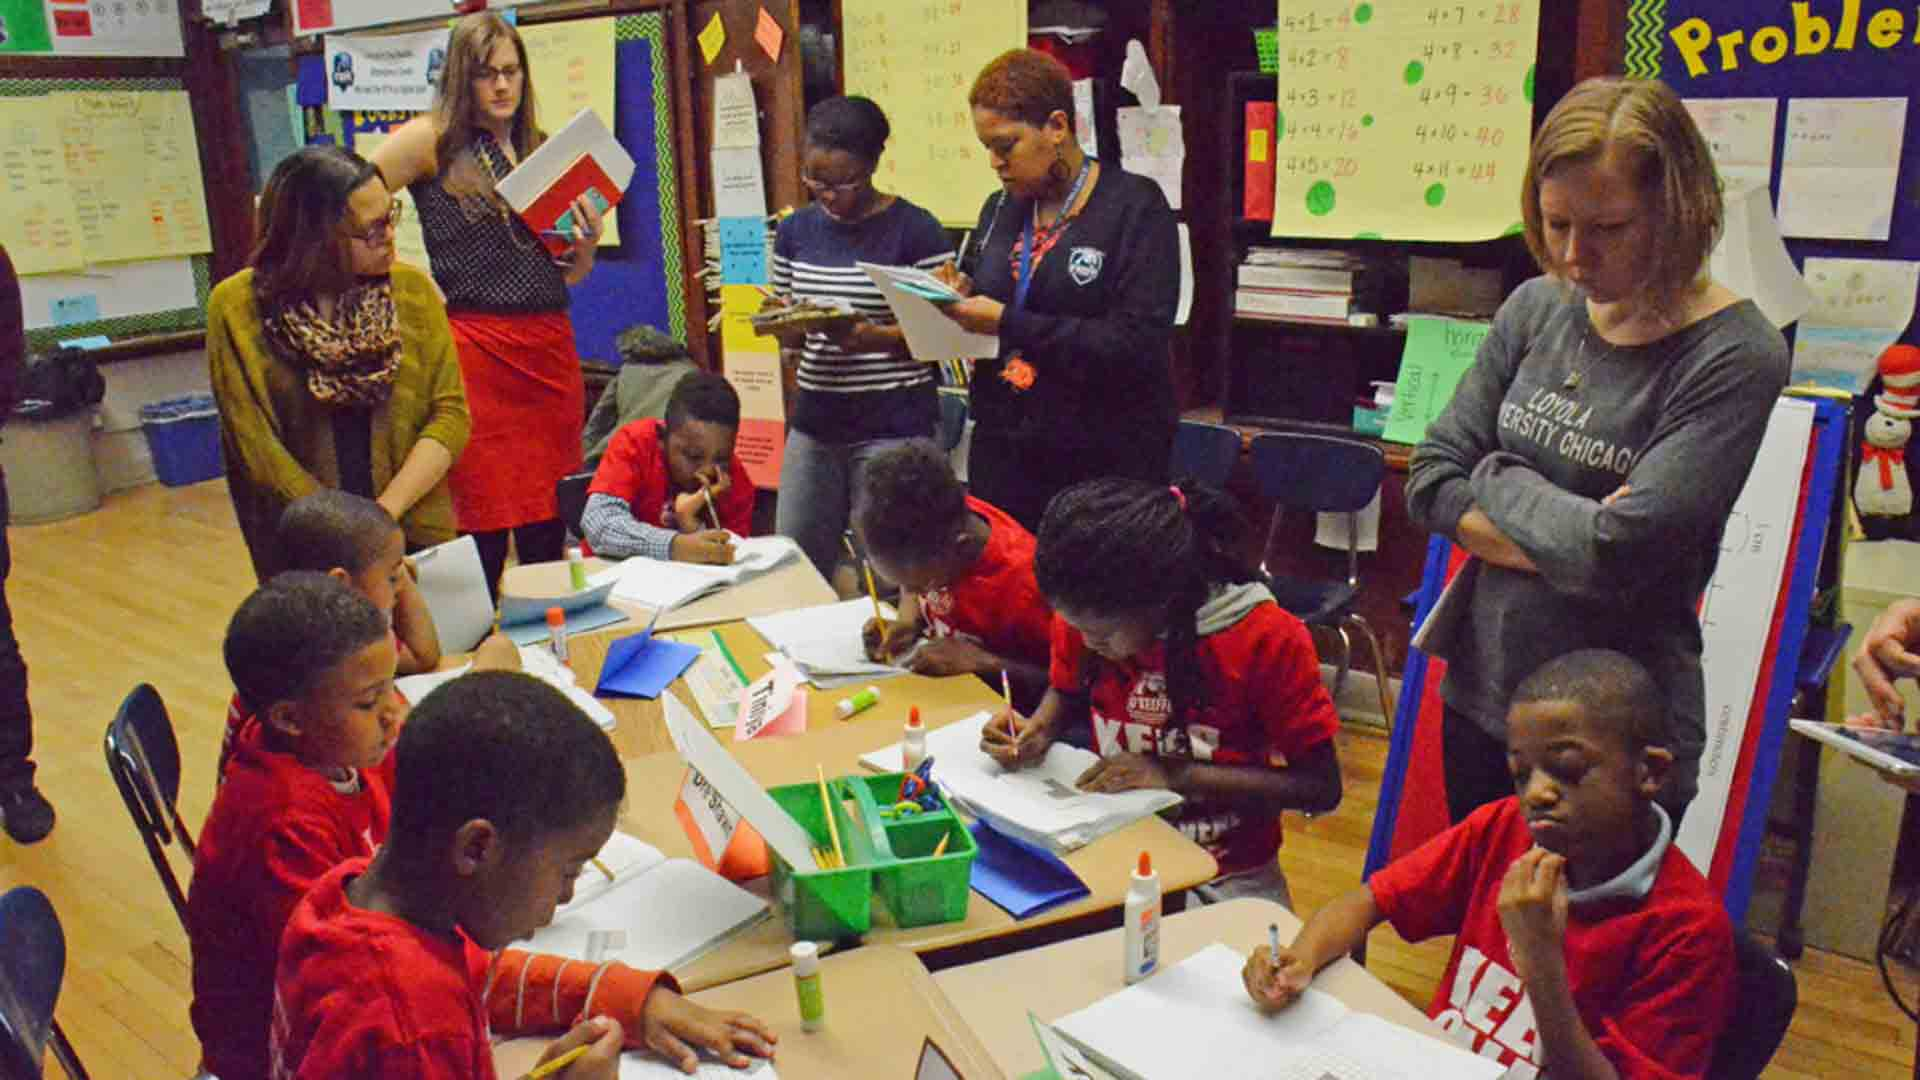 Teachers observe children working on a math problem during a public research lesson at the O'Keeffe School of Excellence in Chicago, January 2015.